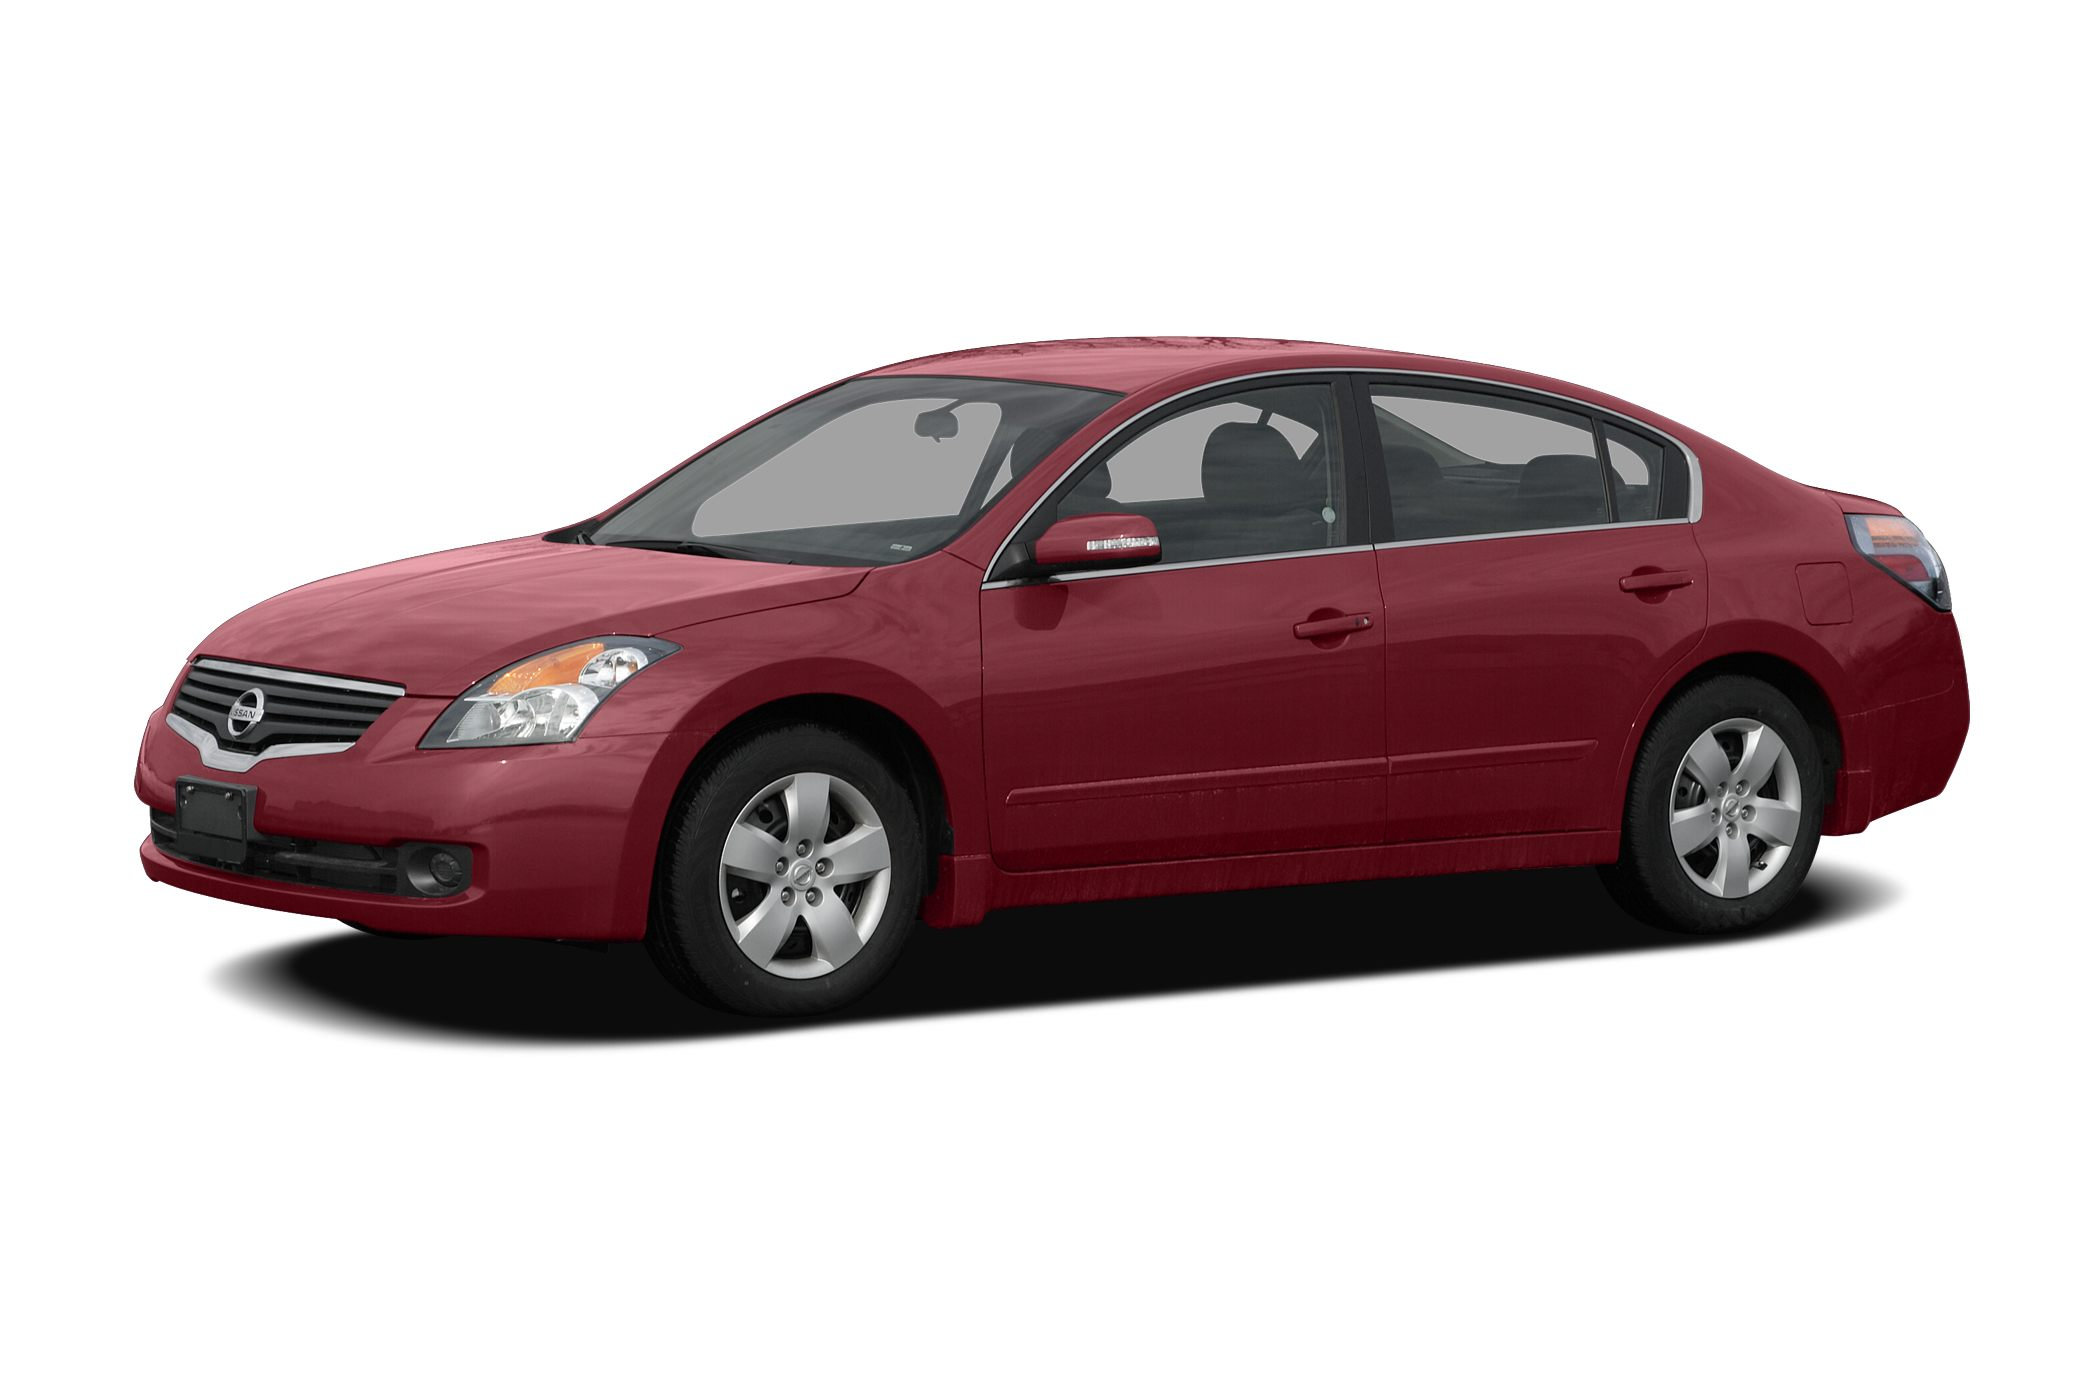 2008 Nissan Altima 2.5 S Coupe for sale in Stone Mountain for $10,900 with 98,218 miles